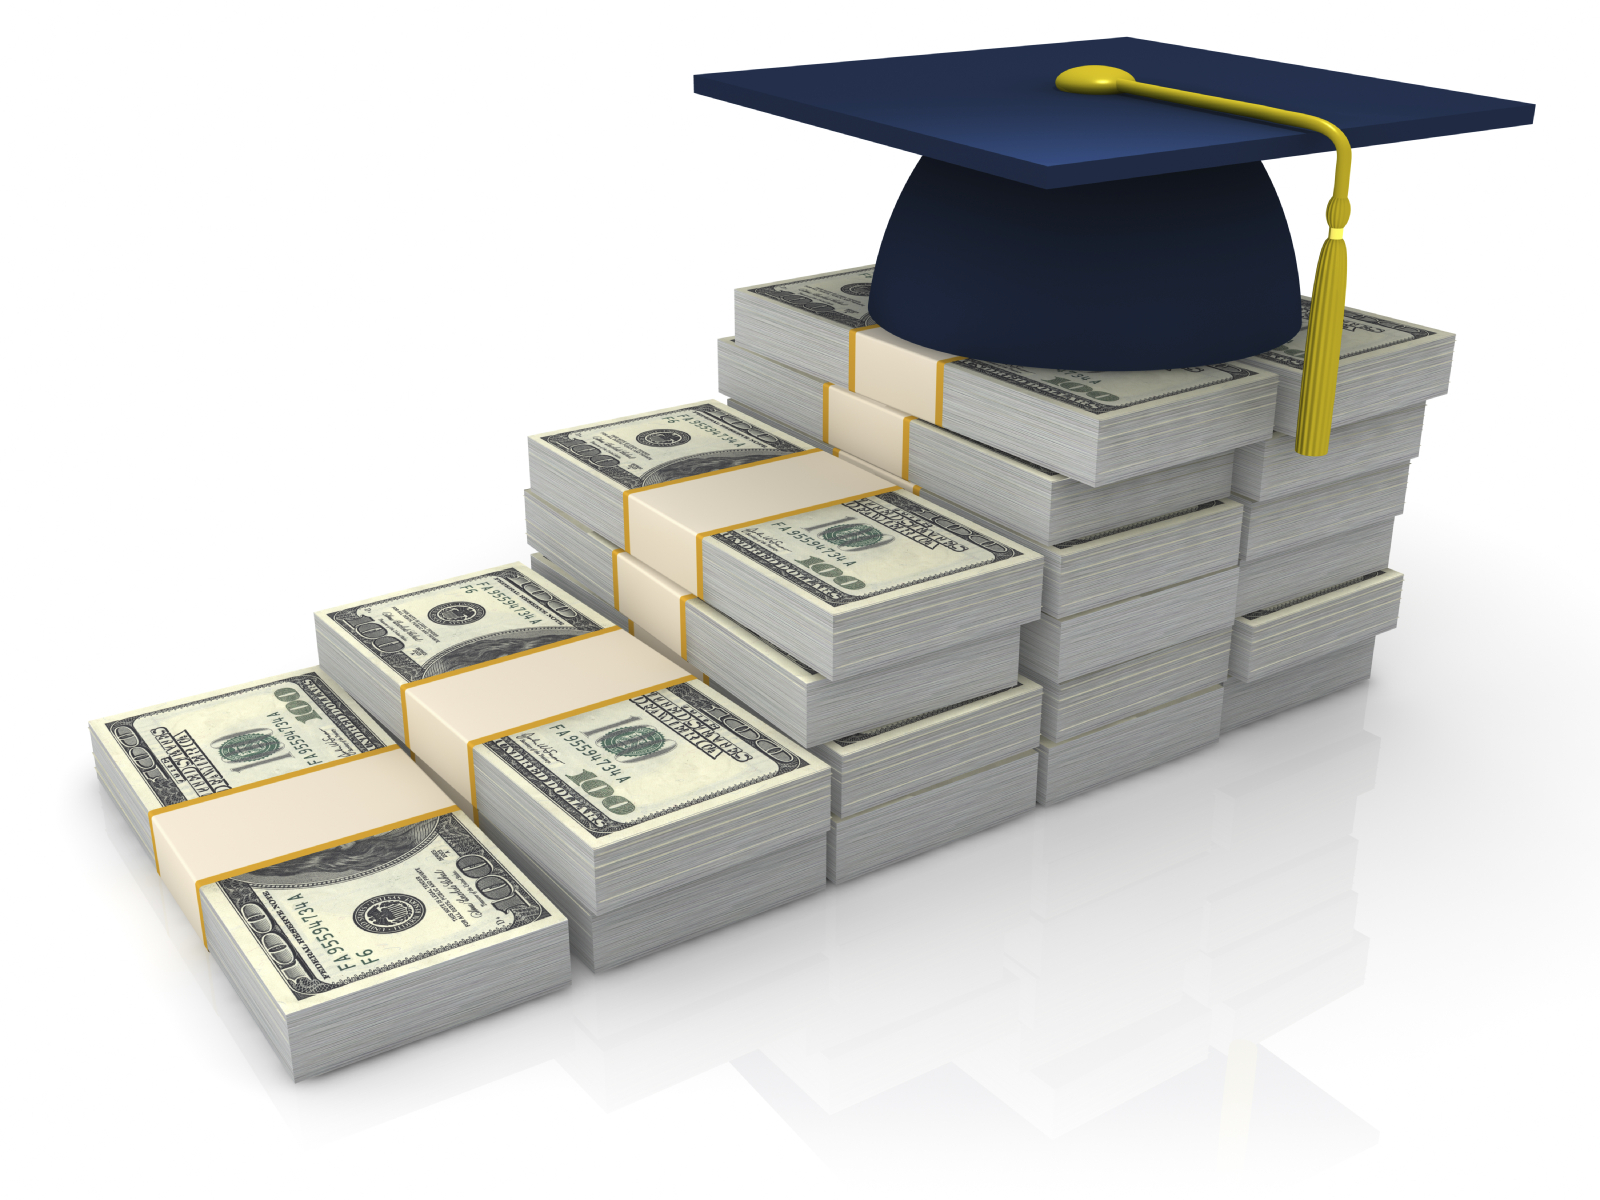 Unlike loans, scholarships do not have to be repaid, so they offer an attractive form of education financing. In addition, the awarding of a scholarship is in itself a prestigious form of recognition. Copyright: iStockPhoto/cogal